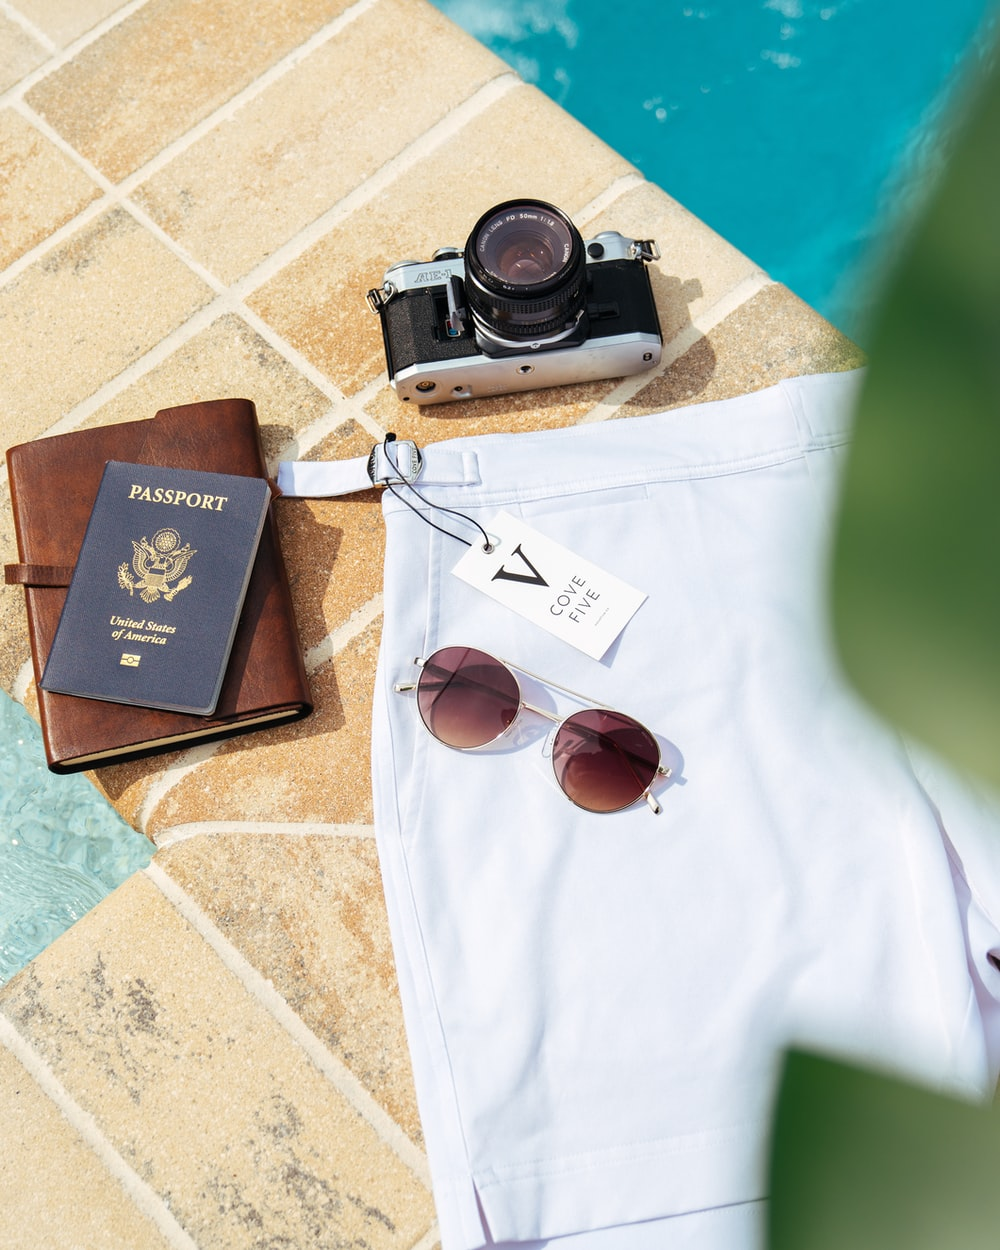 black and grey film camera, passport and white shorts on poll sside